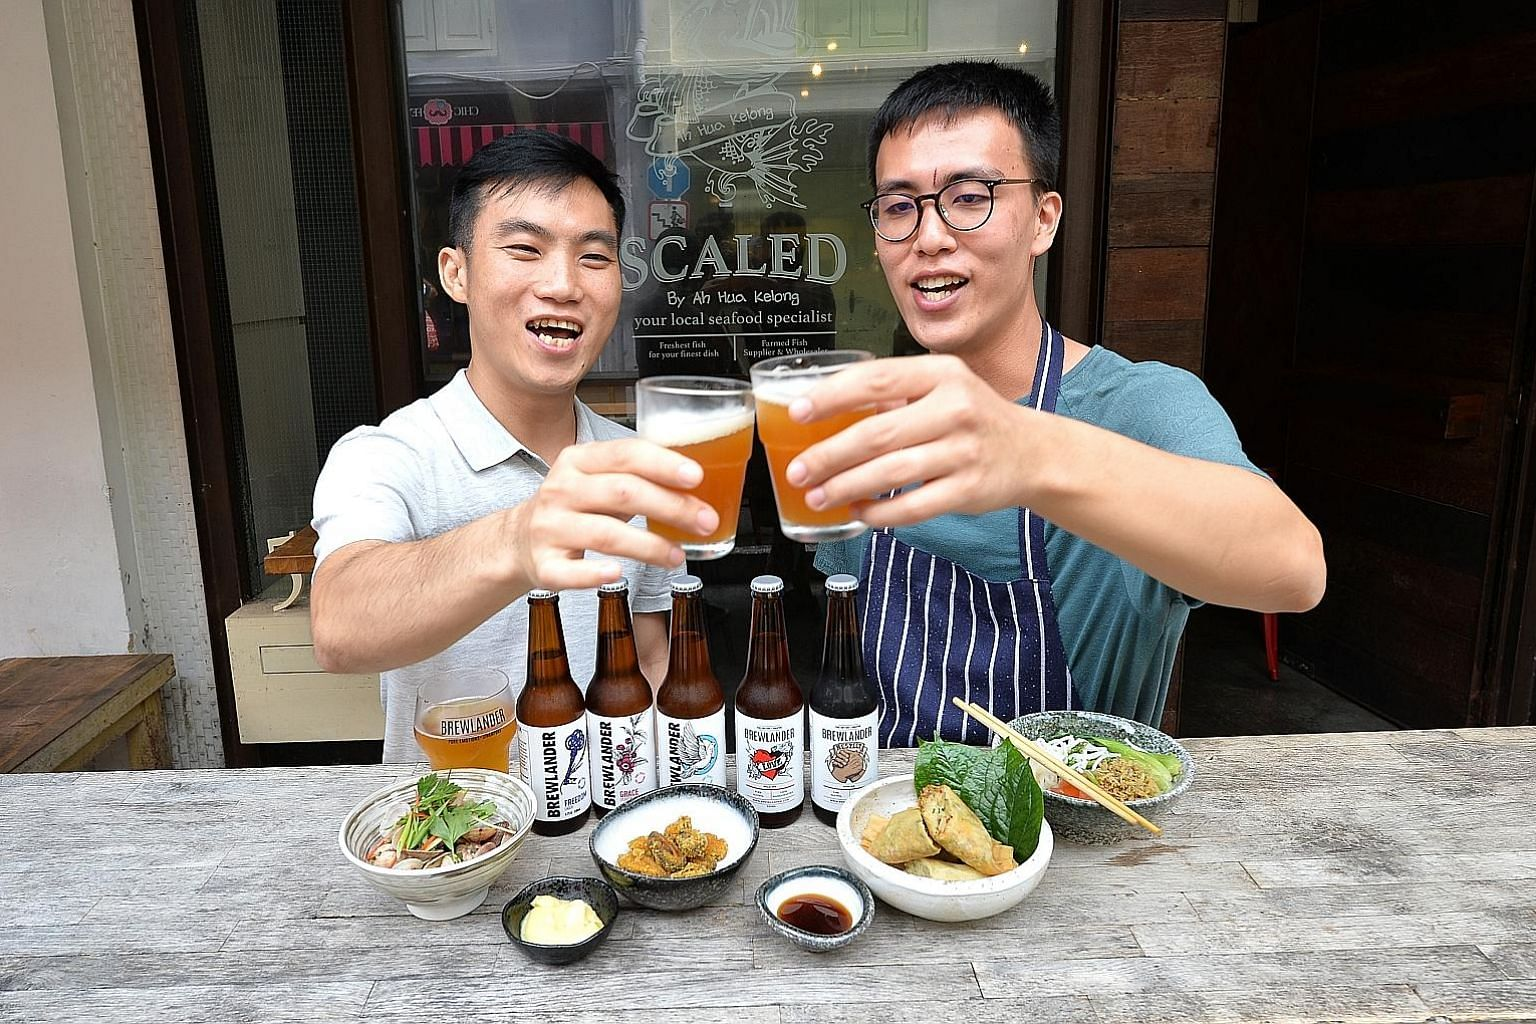 Brewlander master brewer John Wei (left) and Scaled by Ah Hua Kelong chef Kuah Kai Wen with some of the local food-and-beer pairings they are serving up at Beerfest Asia this year.